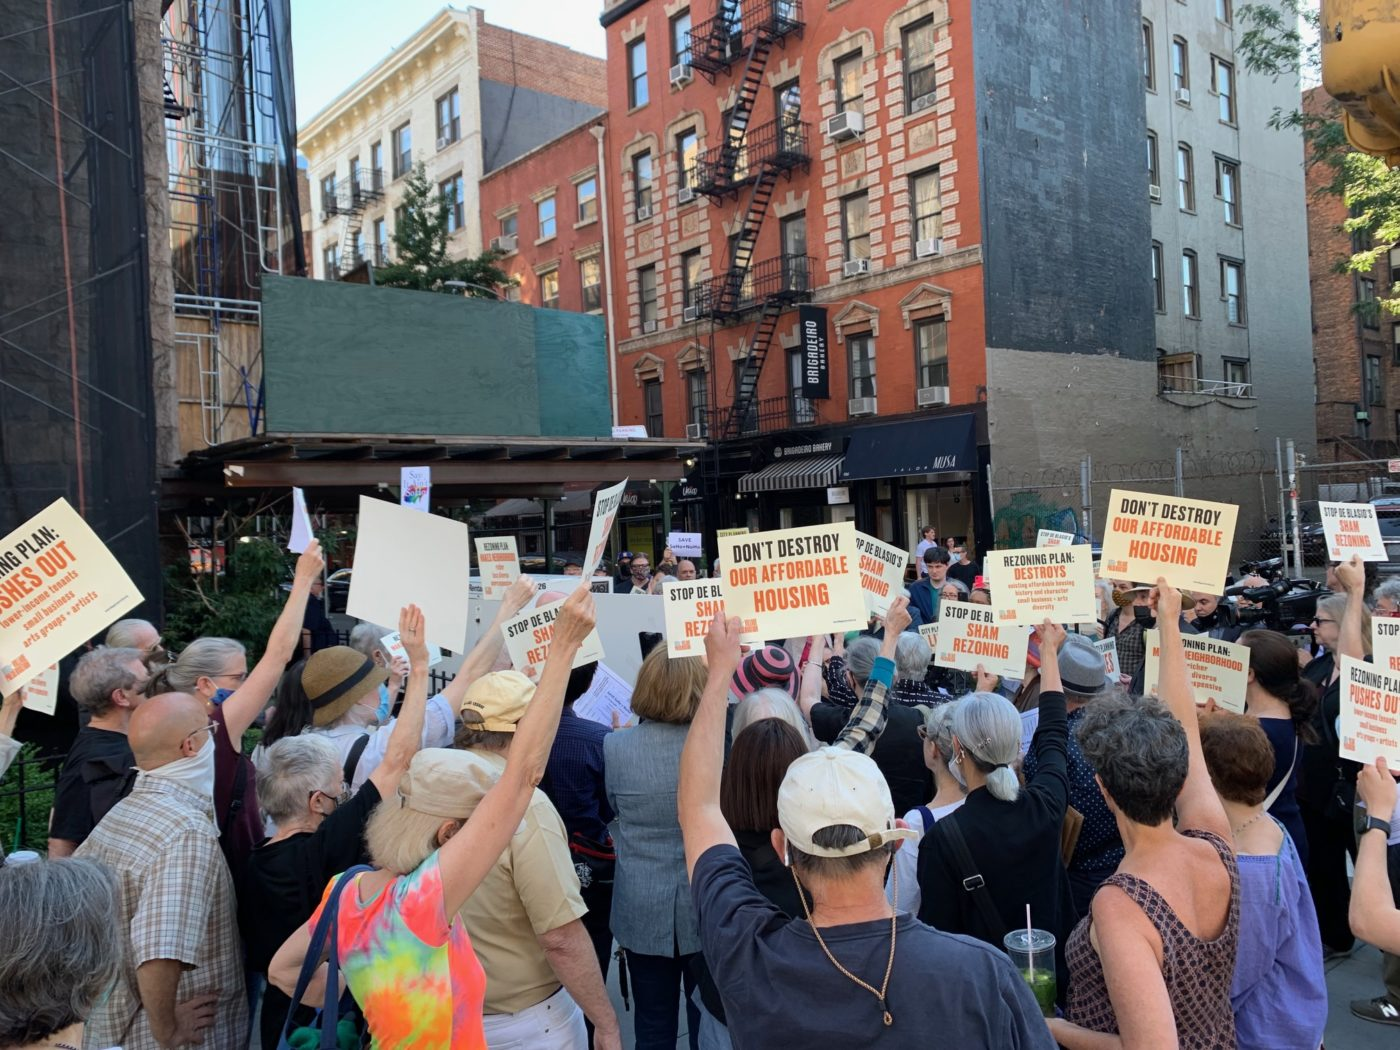 Crowd holdings signs at press conference/rally prior to hearing on SoHo/NoHo/Chinatown upzoning, June 23, 2021